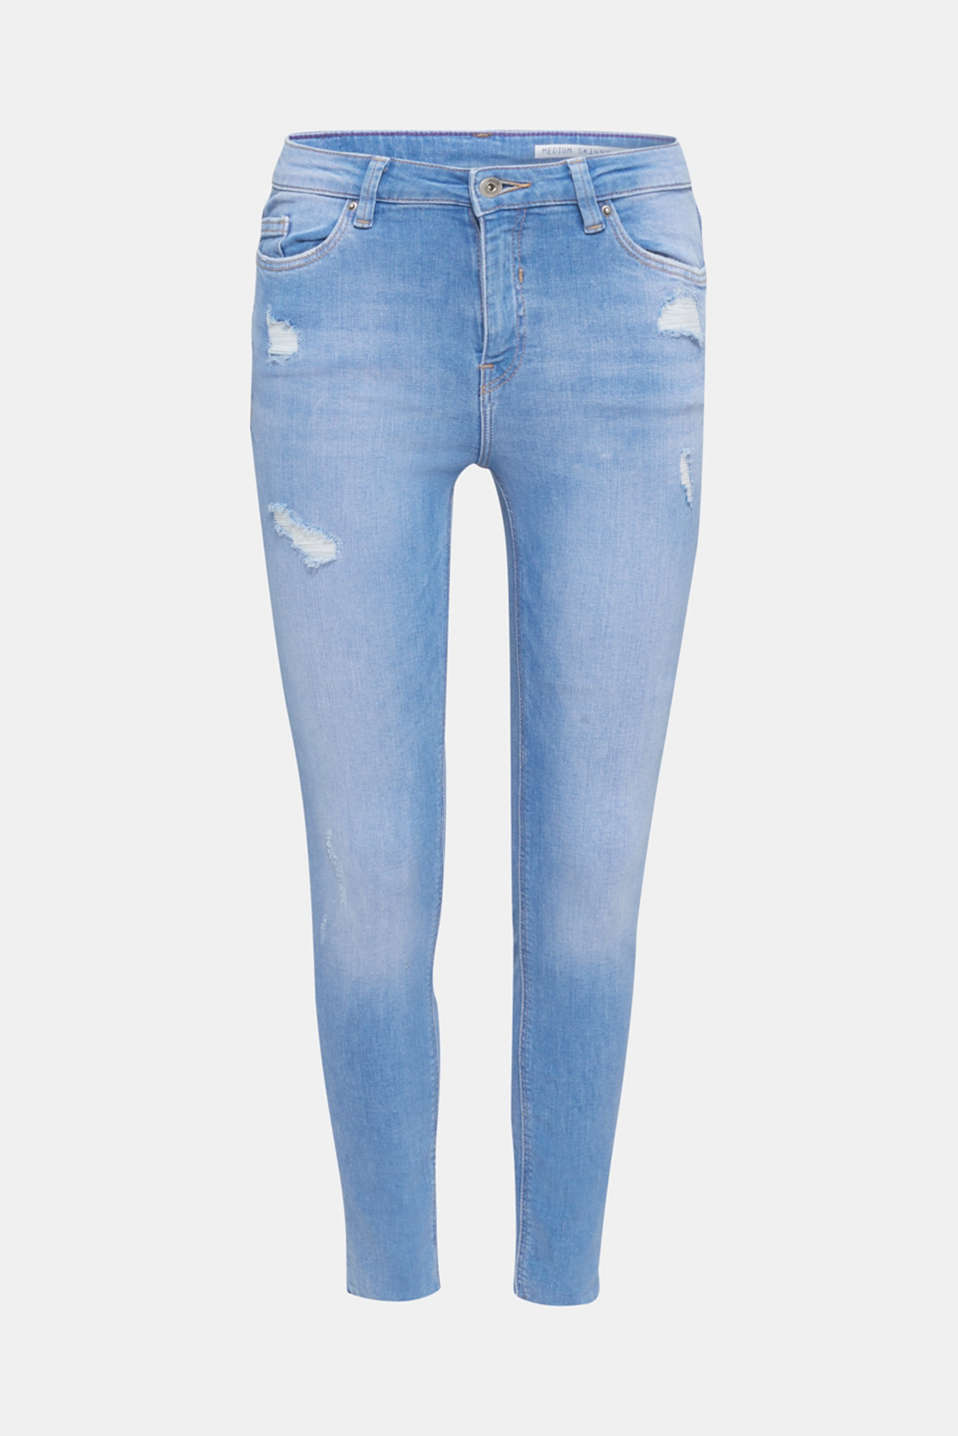 Ankle-length distressed jeans, BRIGHT BLUE, detail image number 7